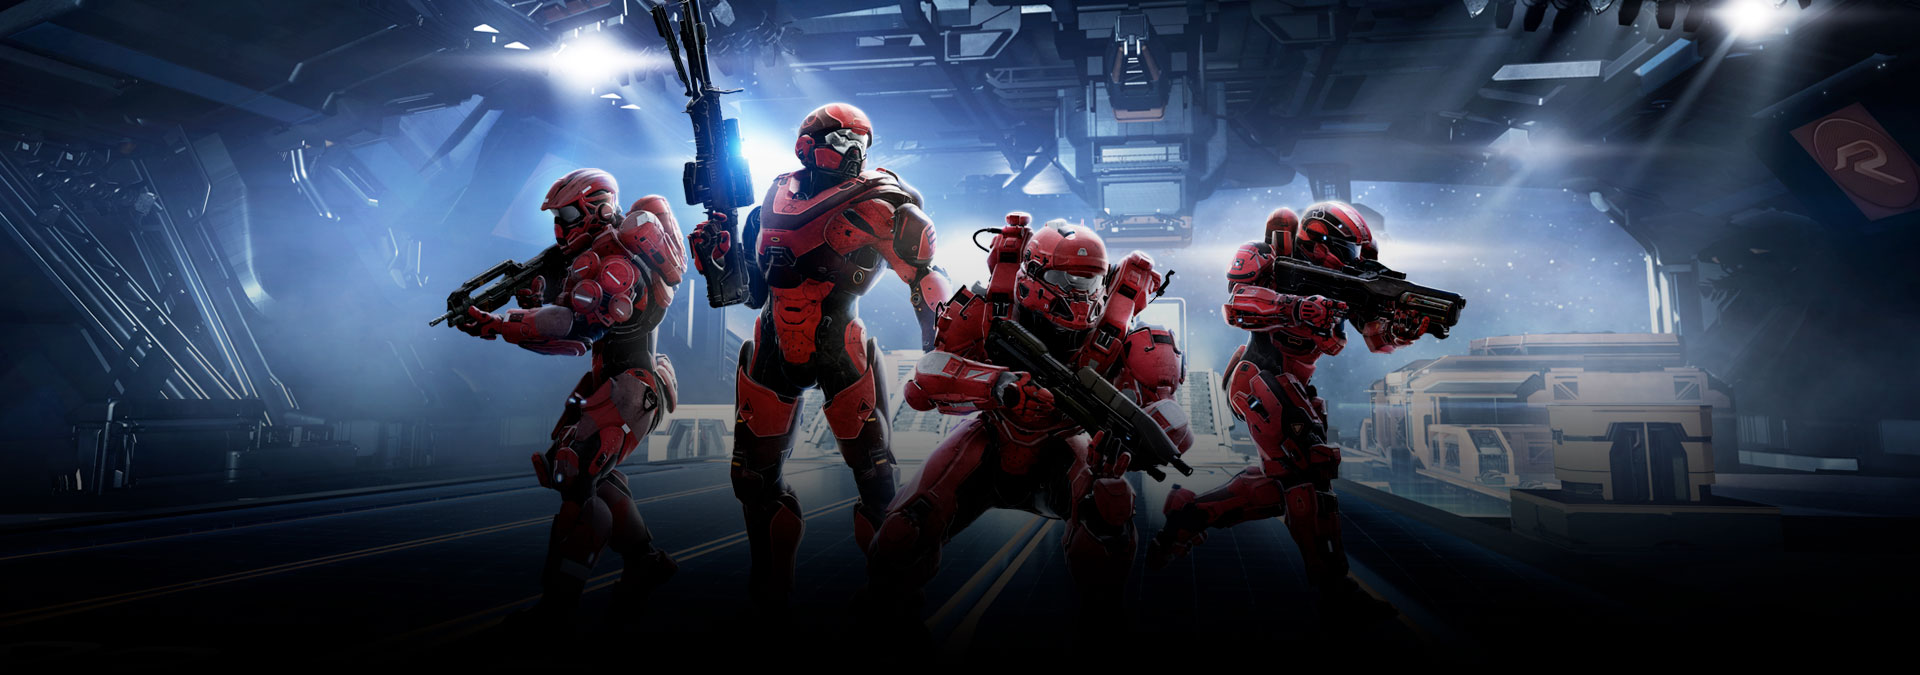 23 2015 By Stephen Comments Off on Halo 5 Wallpaper HD Desktop 1920x675